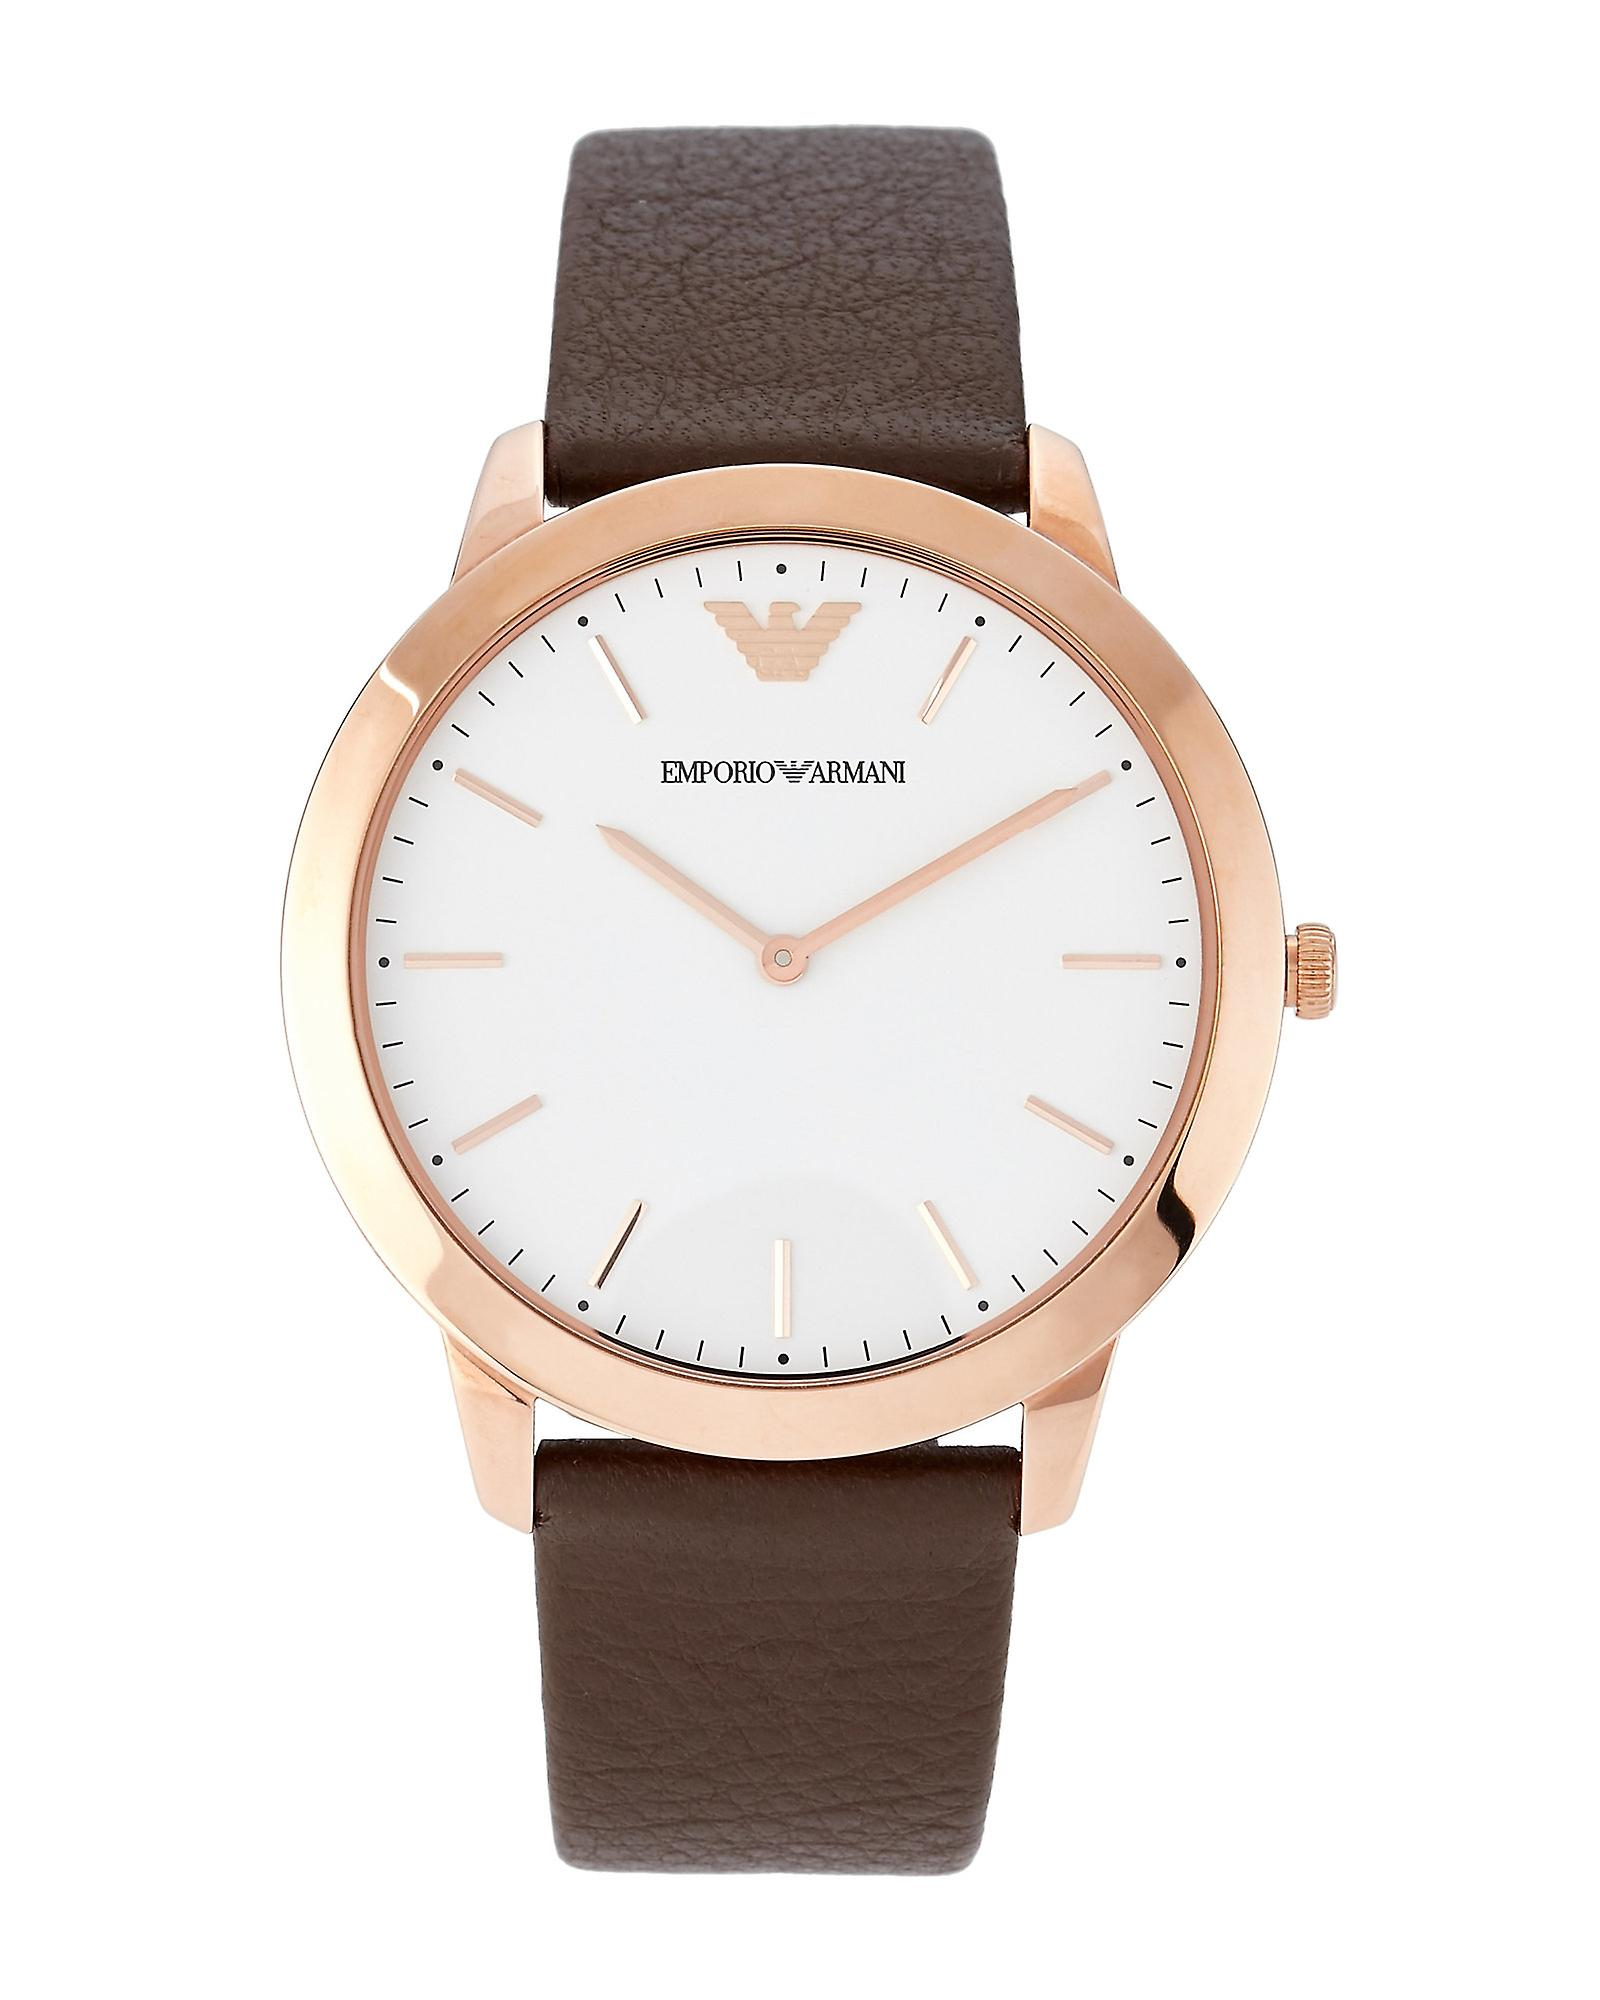 Emporio Armani Ar2487 Classic Rose Gold Brown Leather Men's Watch